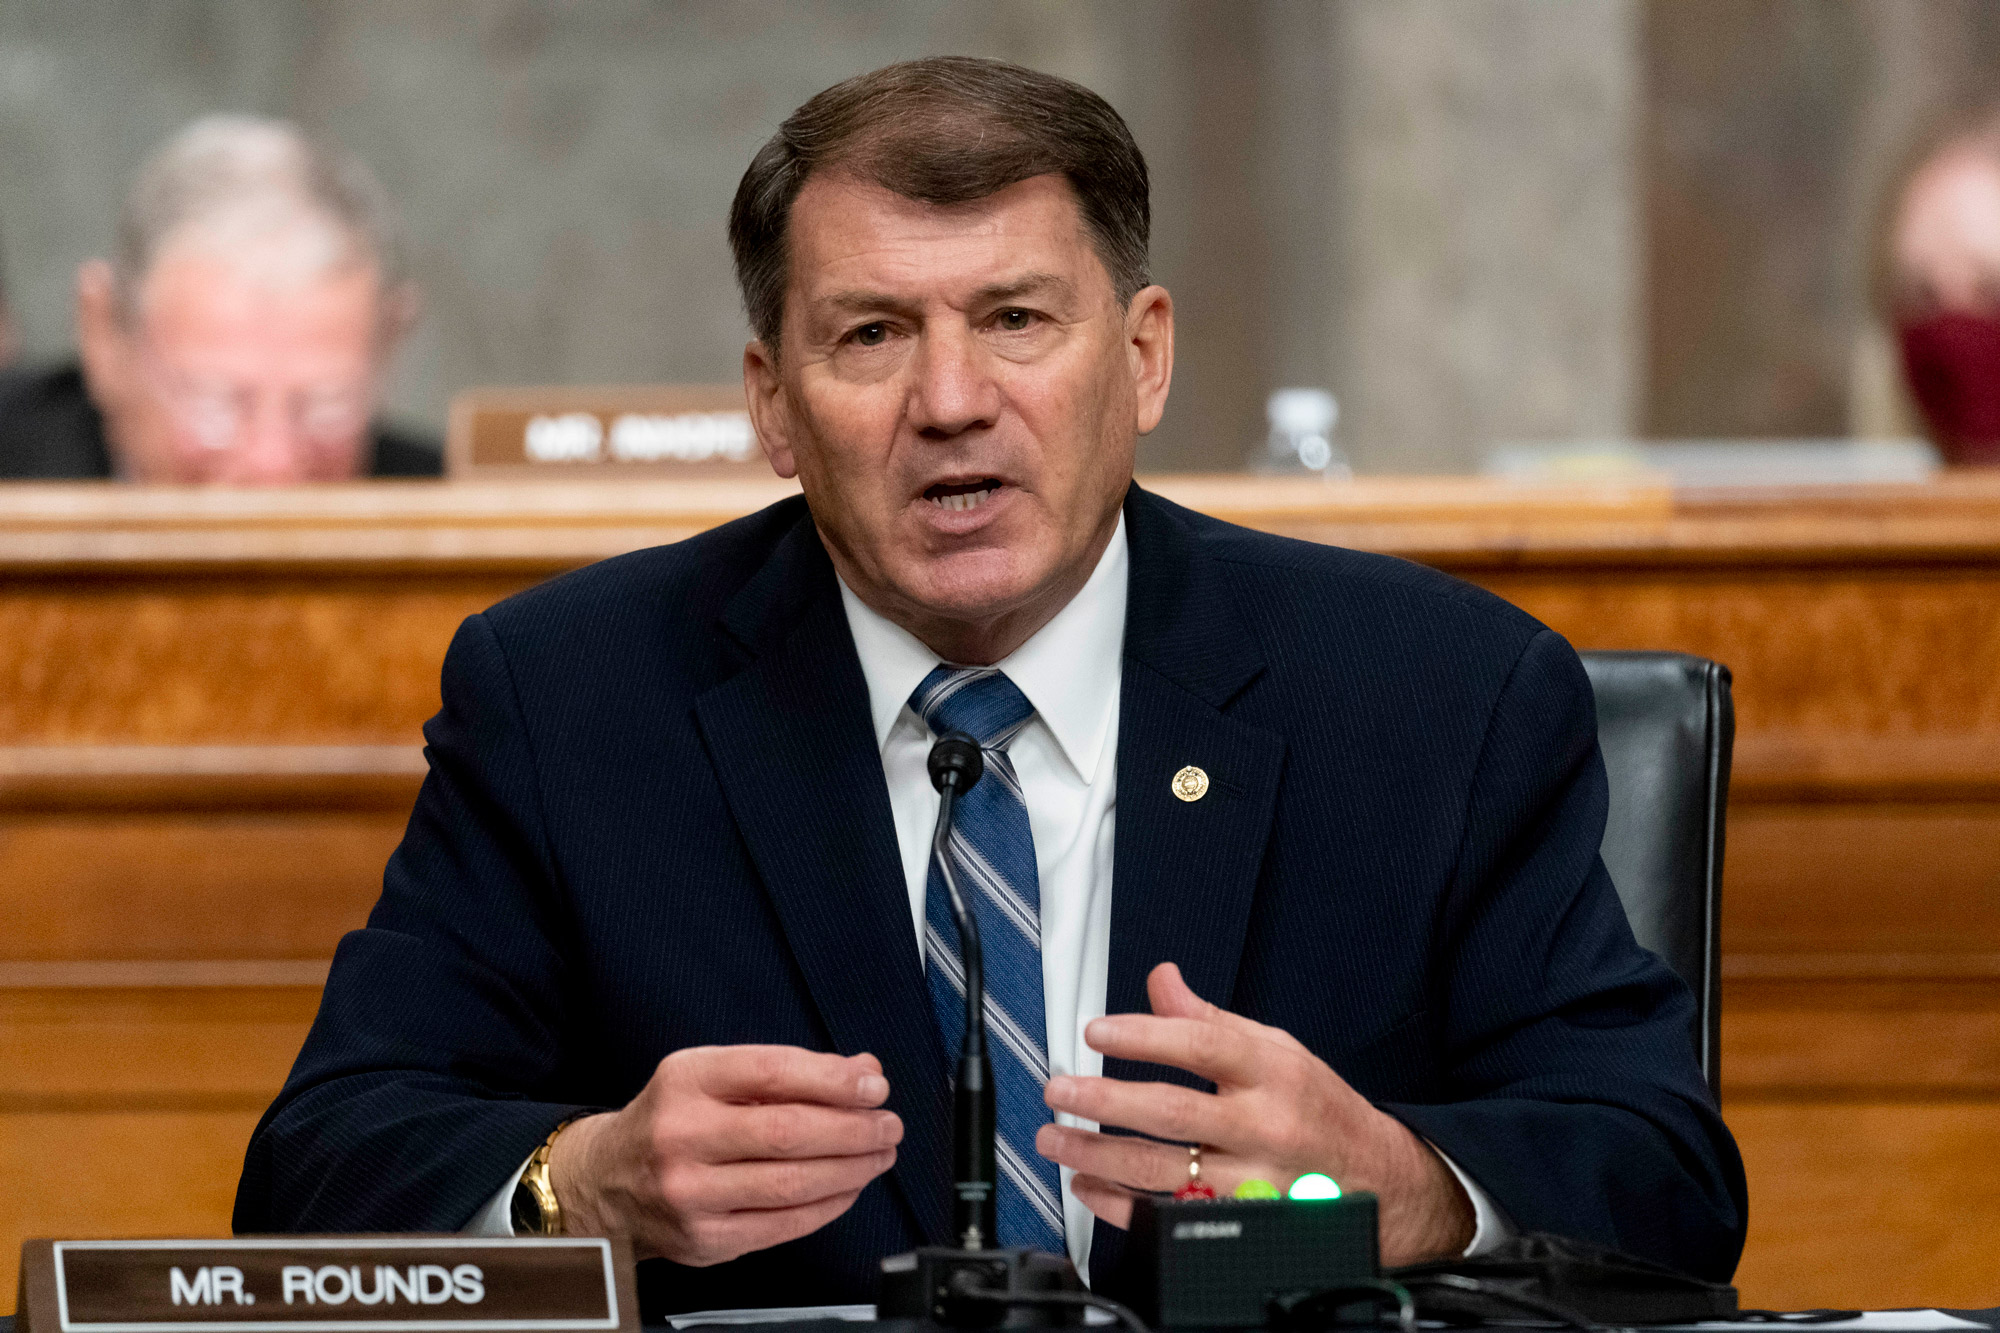 Sen. Mike Rounds speaks during a hearing on Capitol Hill on March 25 in Washington, DC.